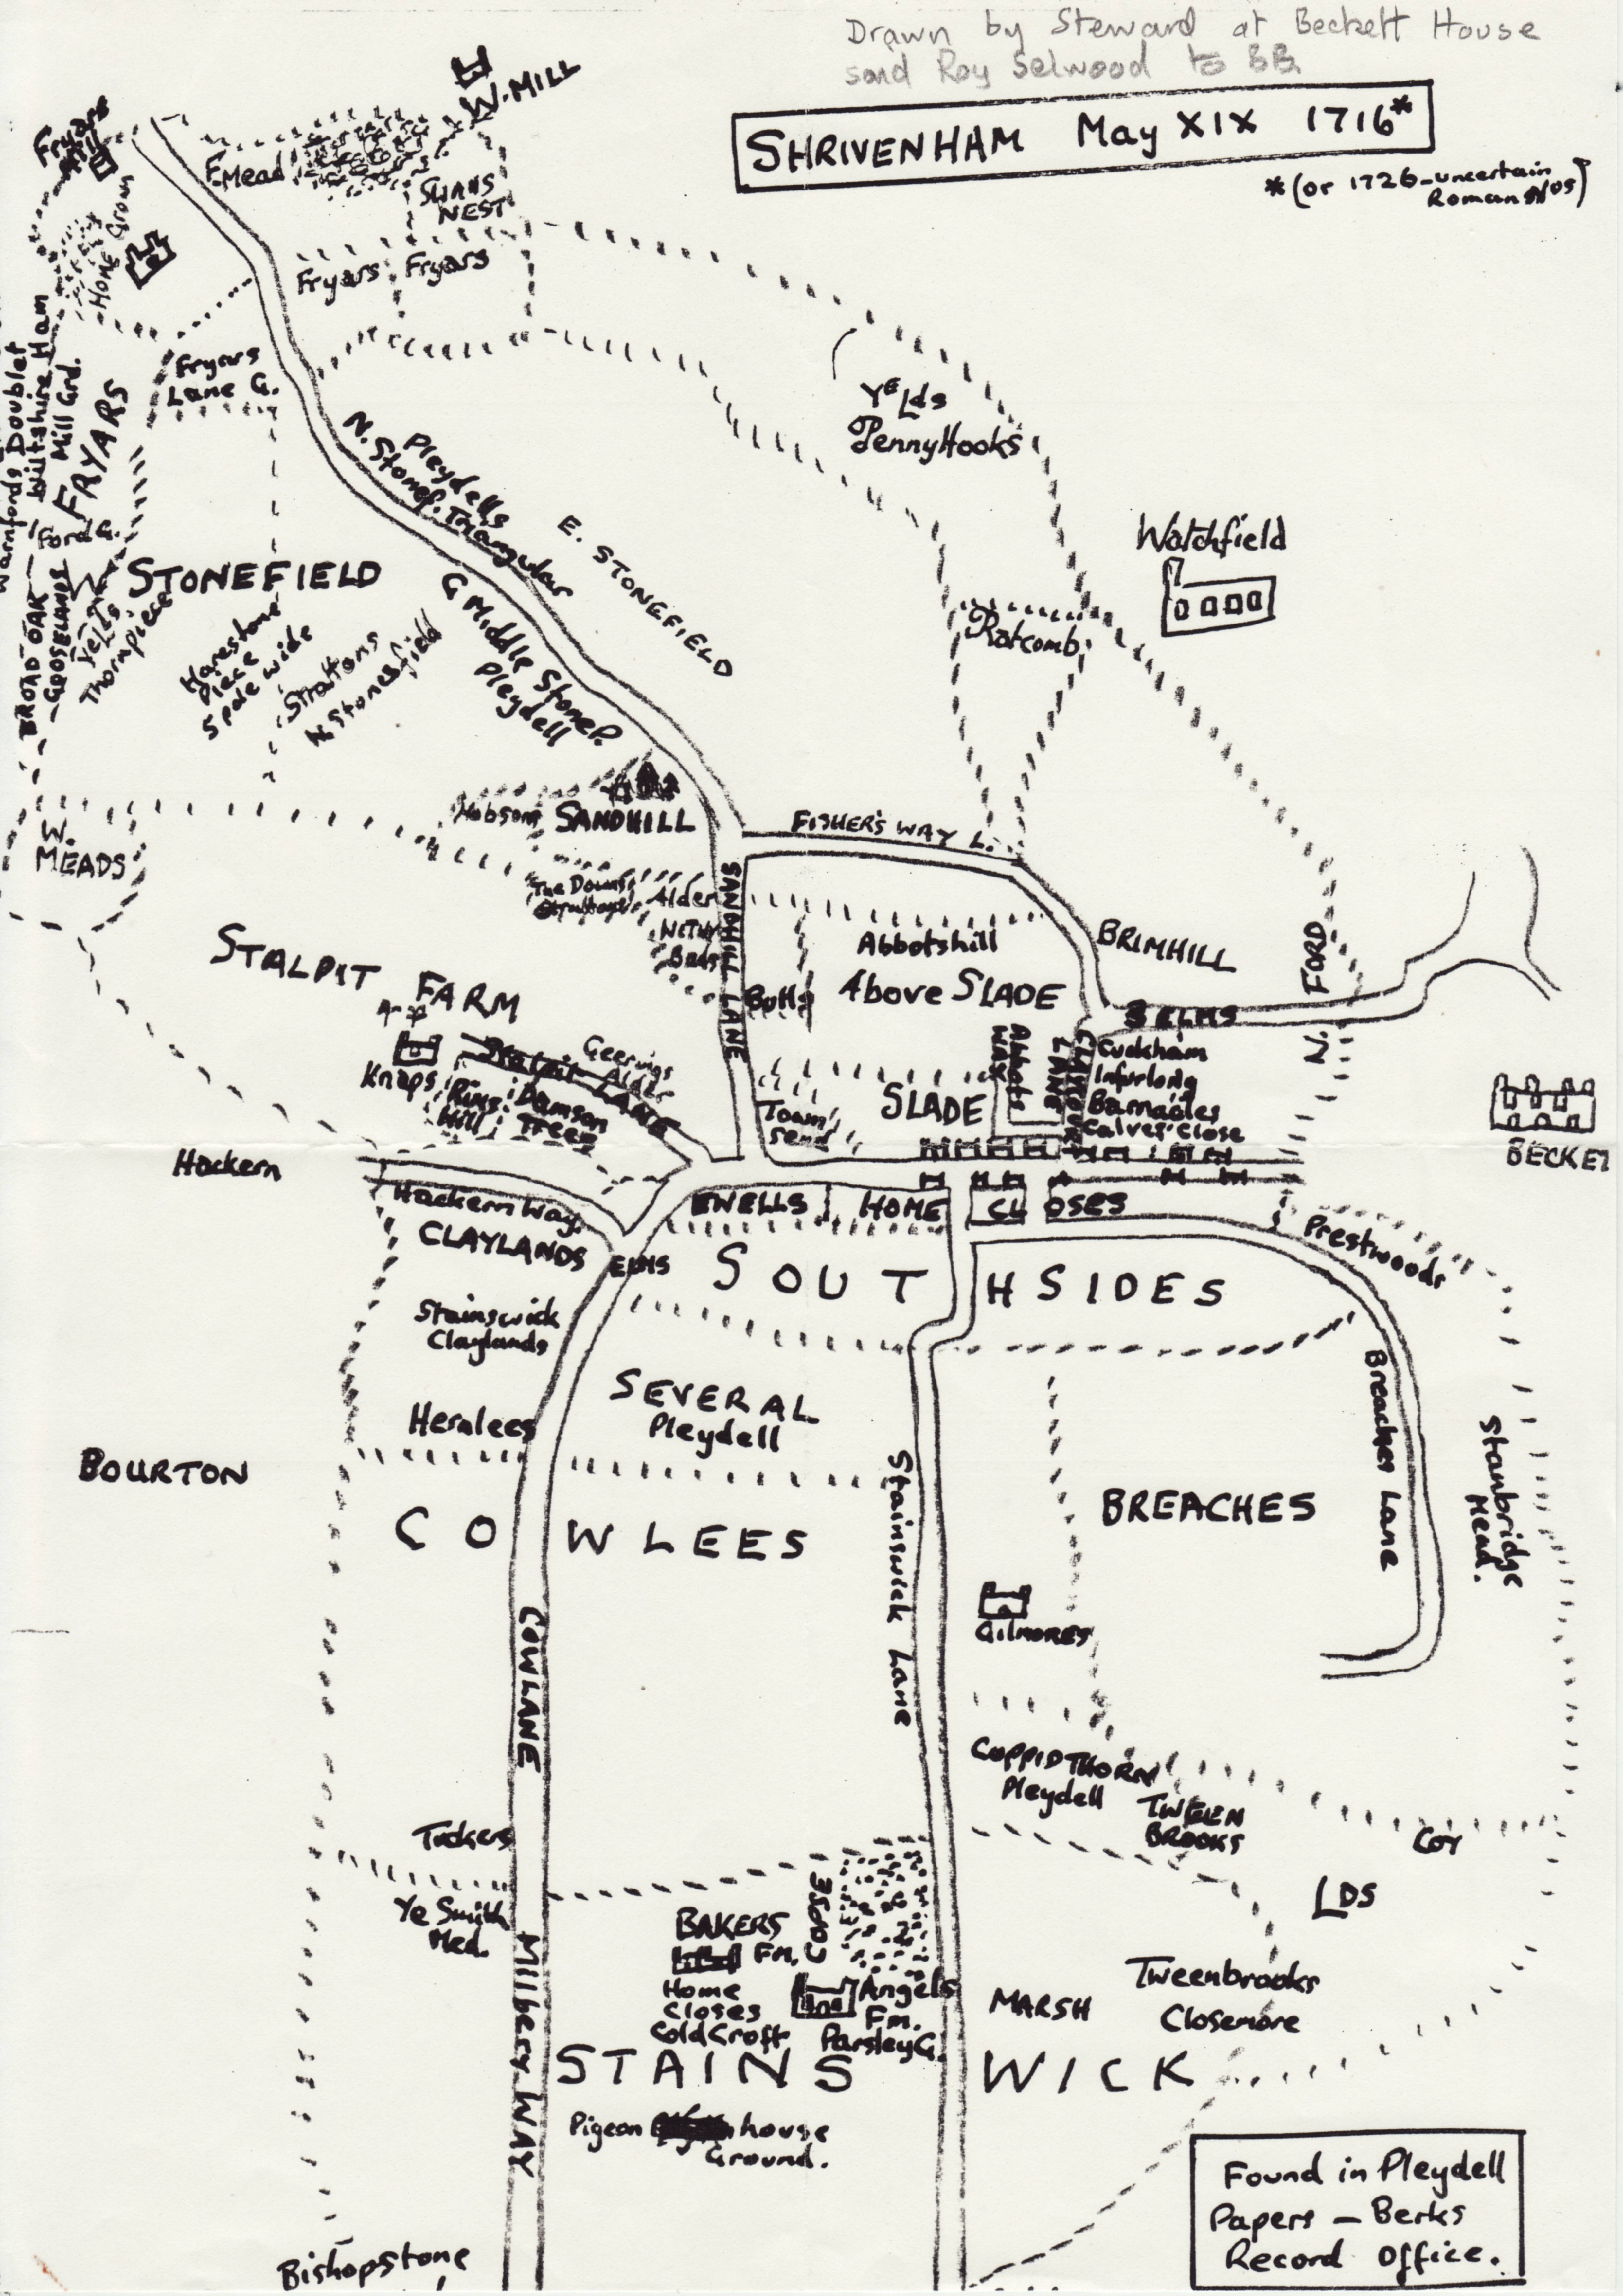 Map of Shrivenham